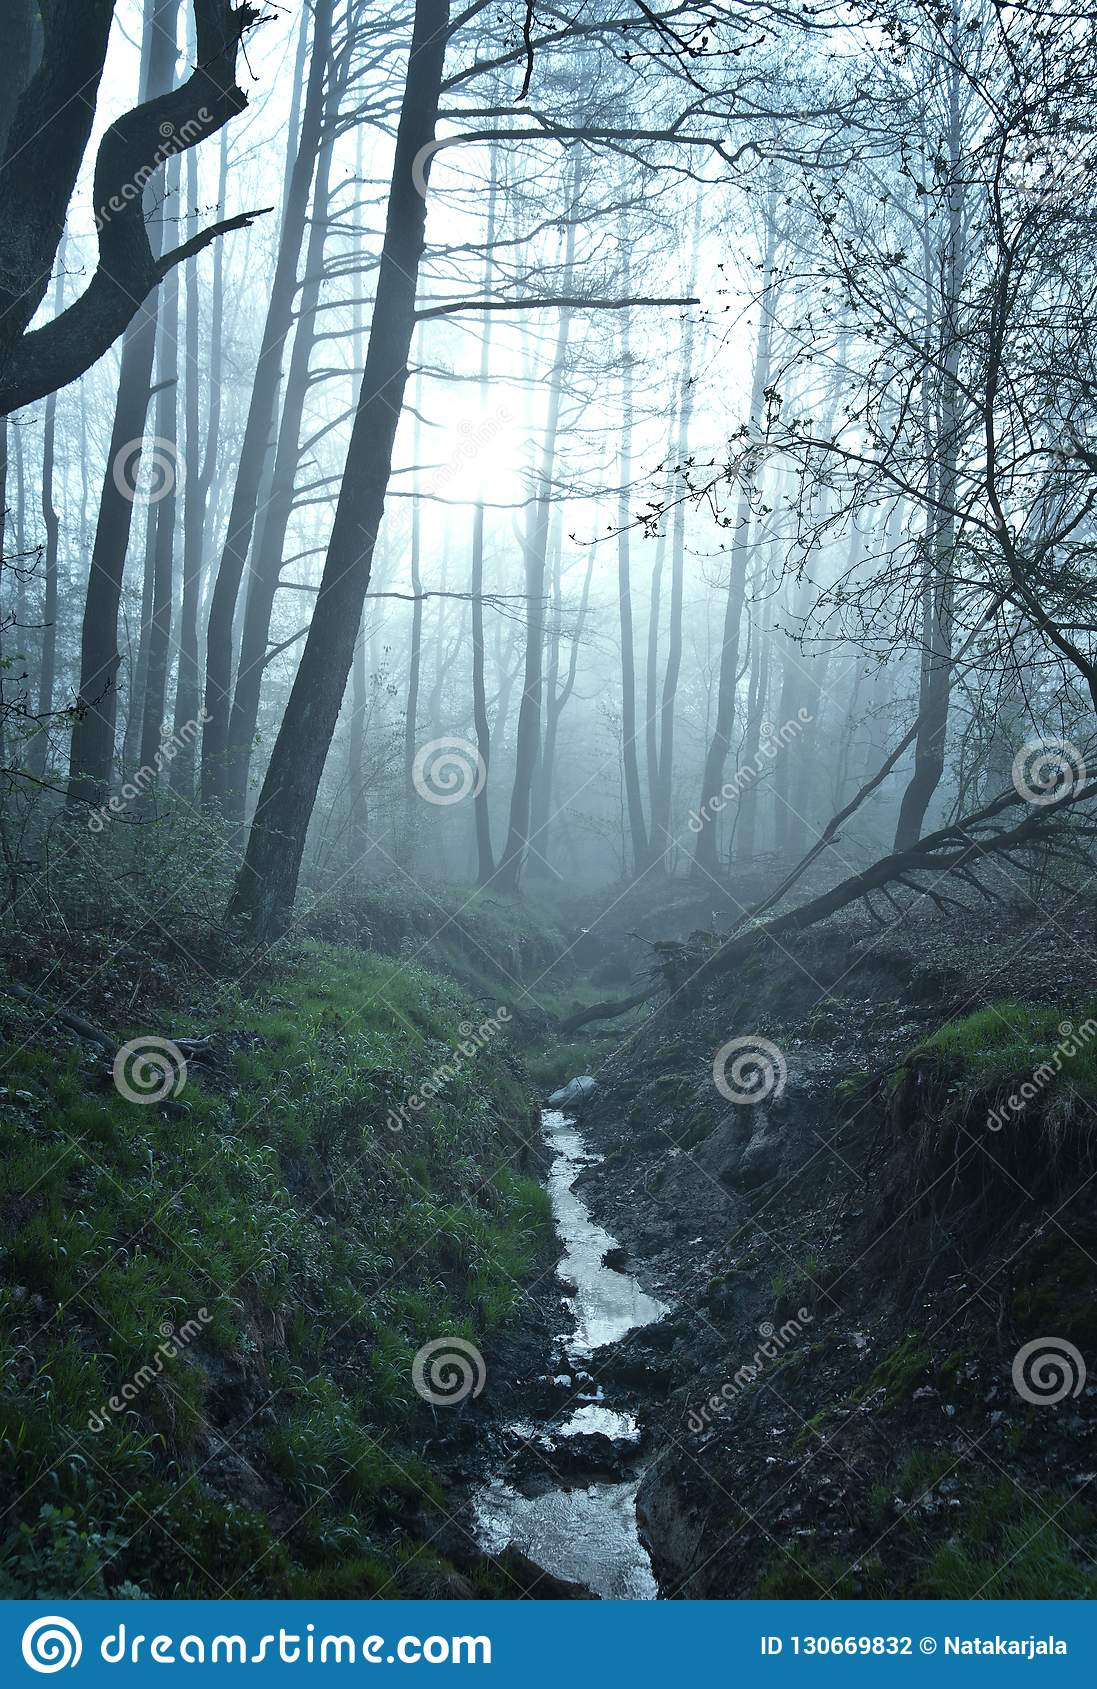 Fine art fantasy color outdoor nature image of a small river / creek in a foggy winter forest with rocks,undergrowth,bridg